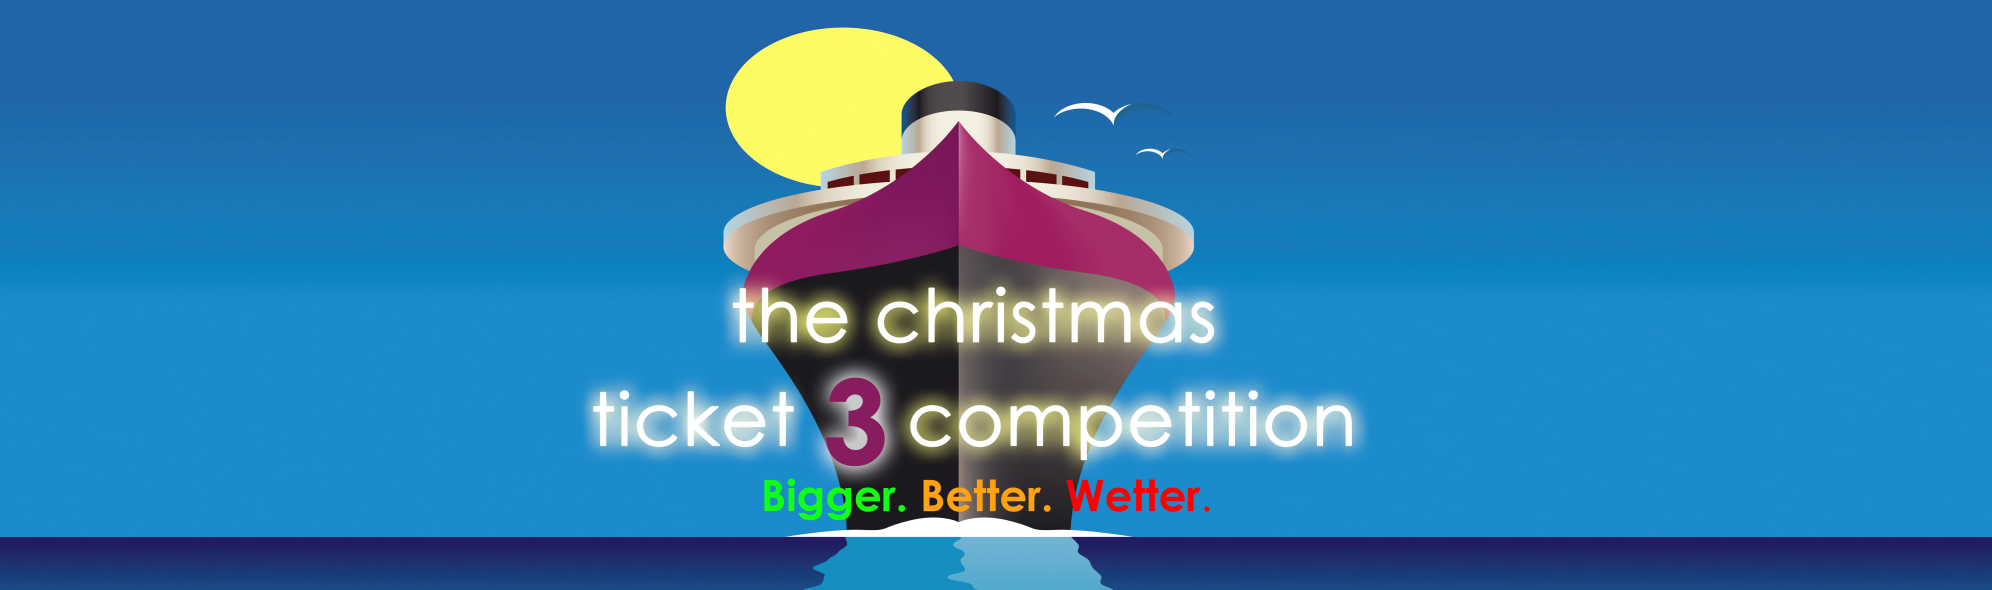 The Christmas ticket 3 competition